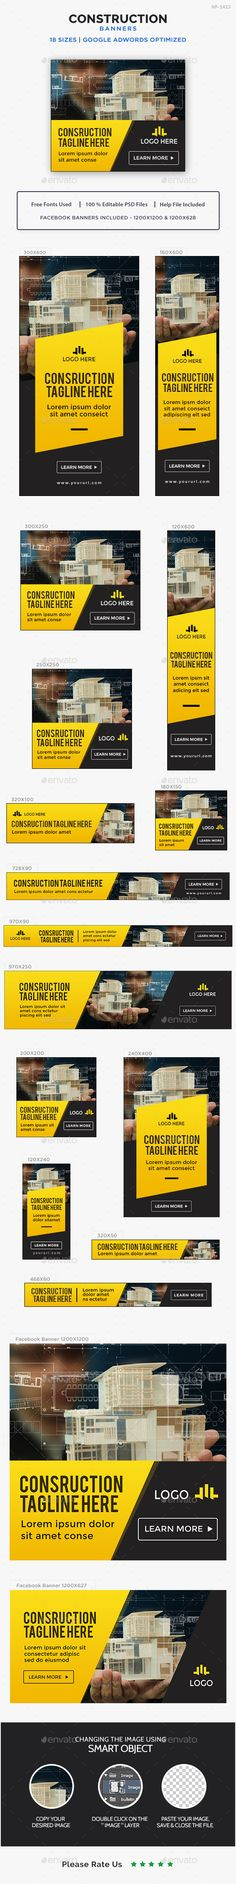 Construction Web Banners Template PSD. Download here: https://graphicriver.net/item/construction-banners/17034796?ref=ksioks